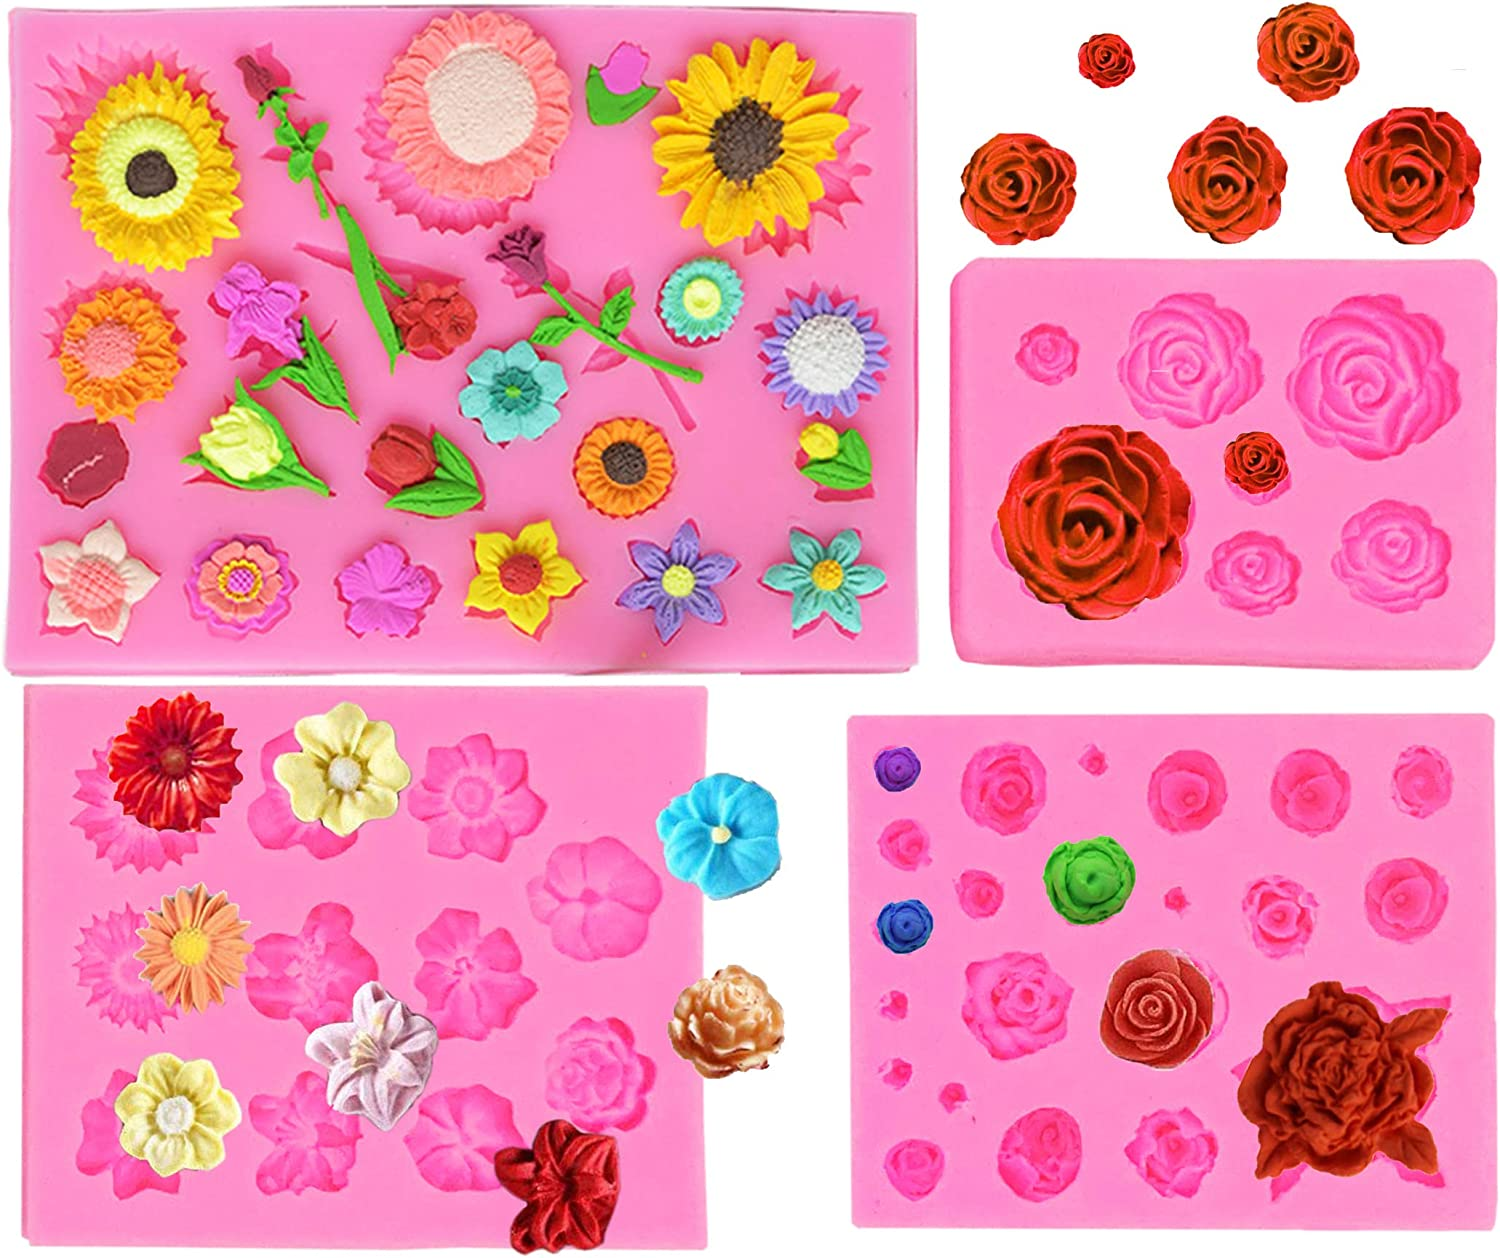 Antallcky 4 Pack Flower Fondant Mold Bud Pot Silicone Alabastrum Bloom Mold for Sunflower Daisy Tulips Plum Blossom Posy Cake Decoration, Chocolate Candy Polymer Clay Cookie Sugar Craft Projects-Pink